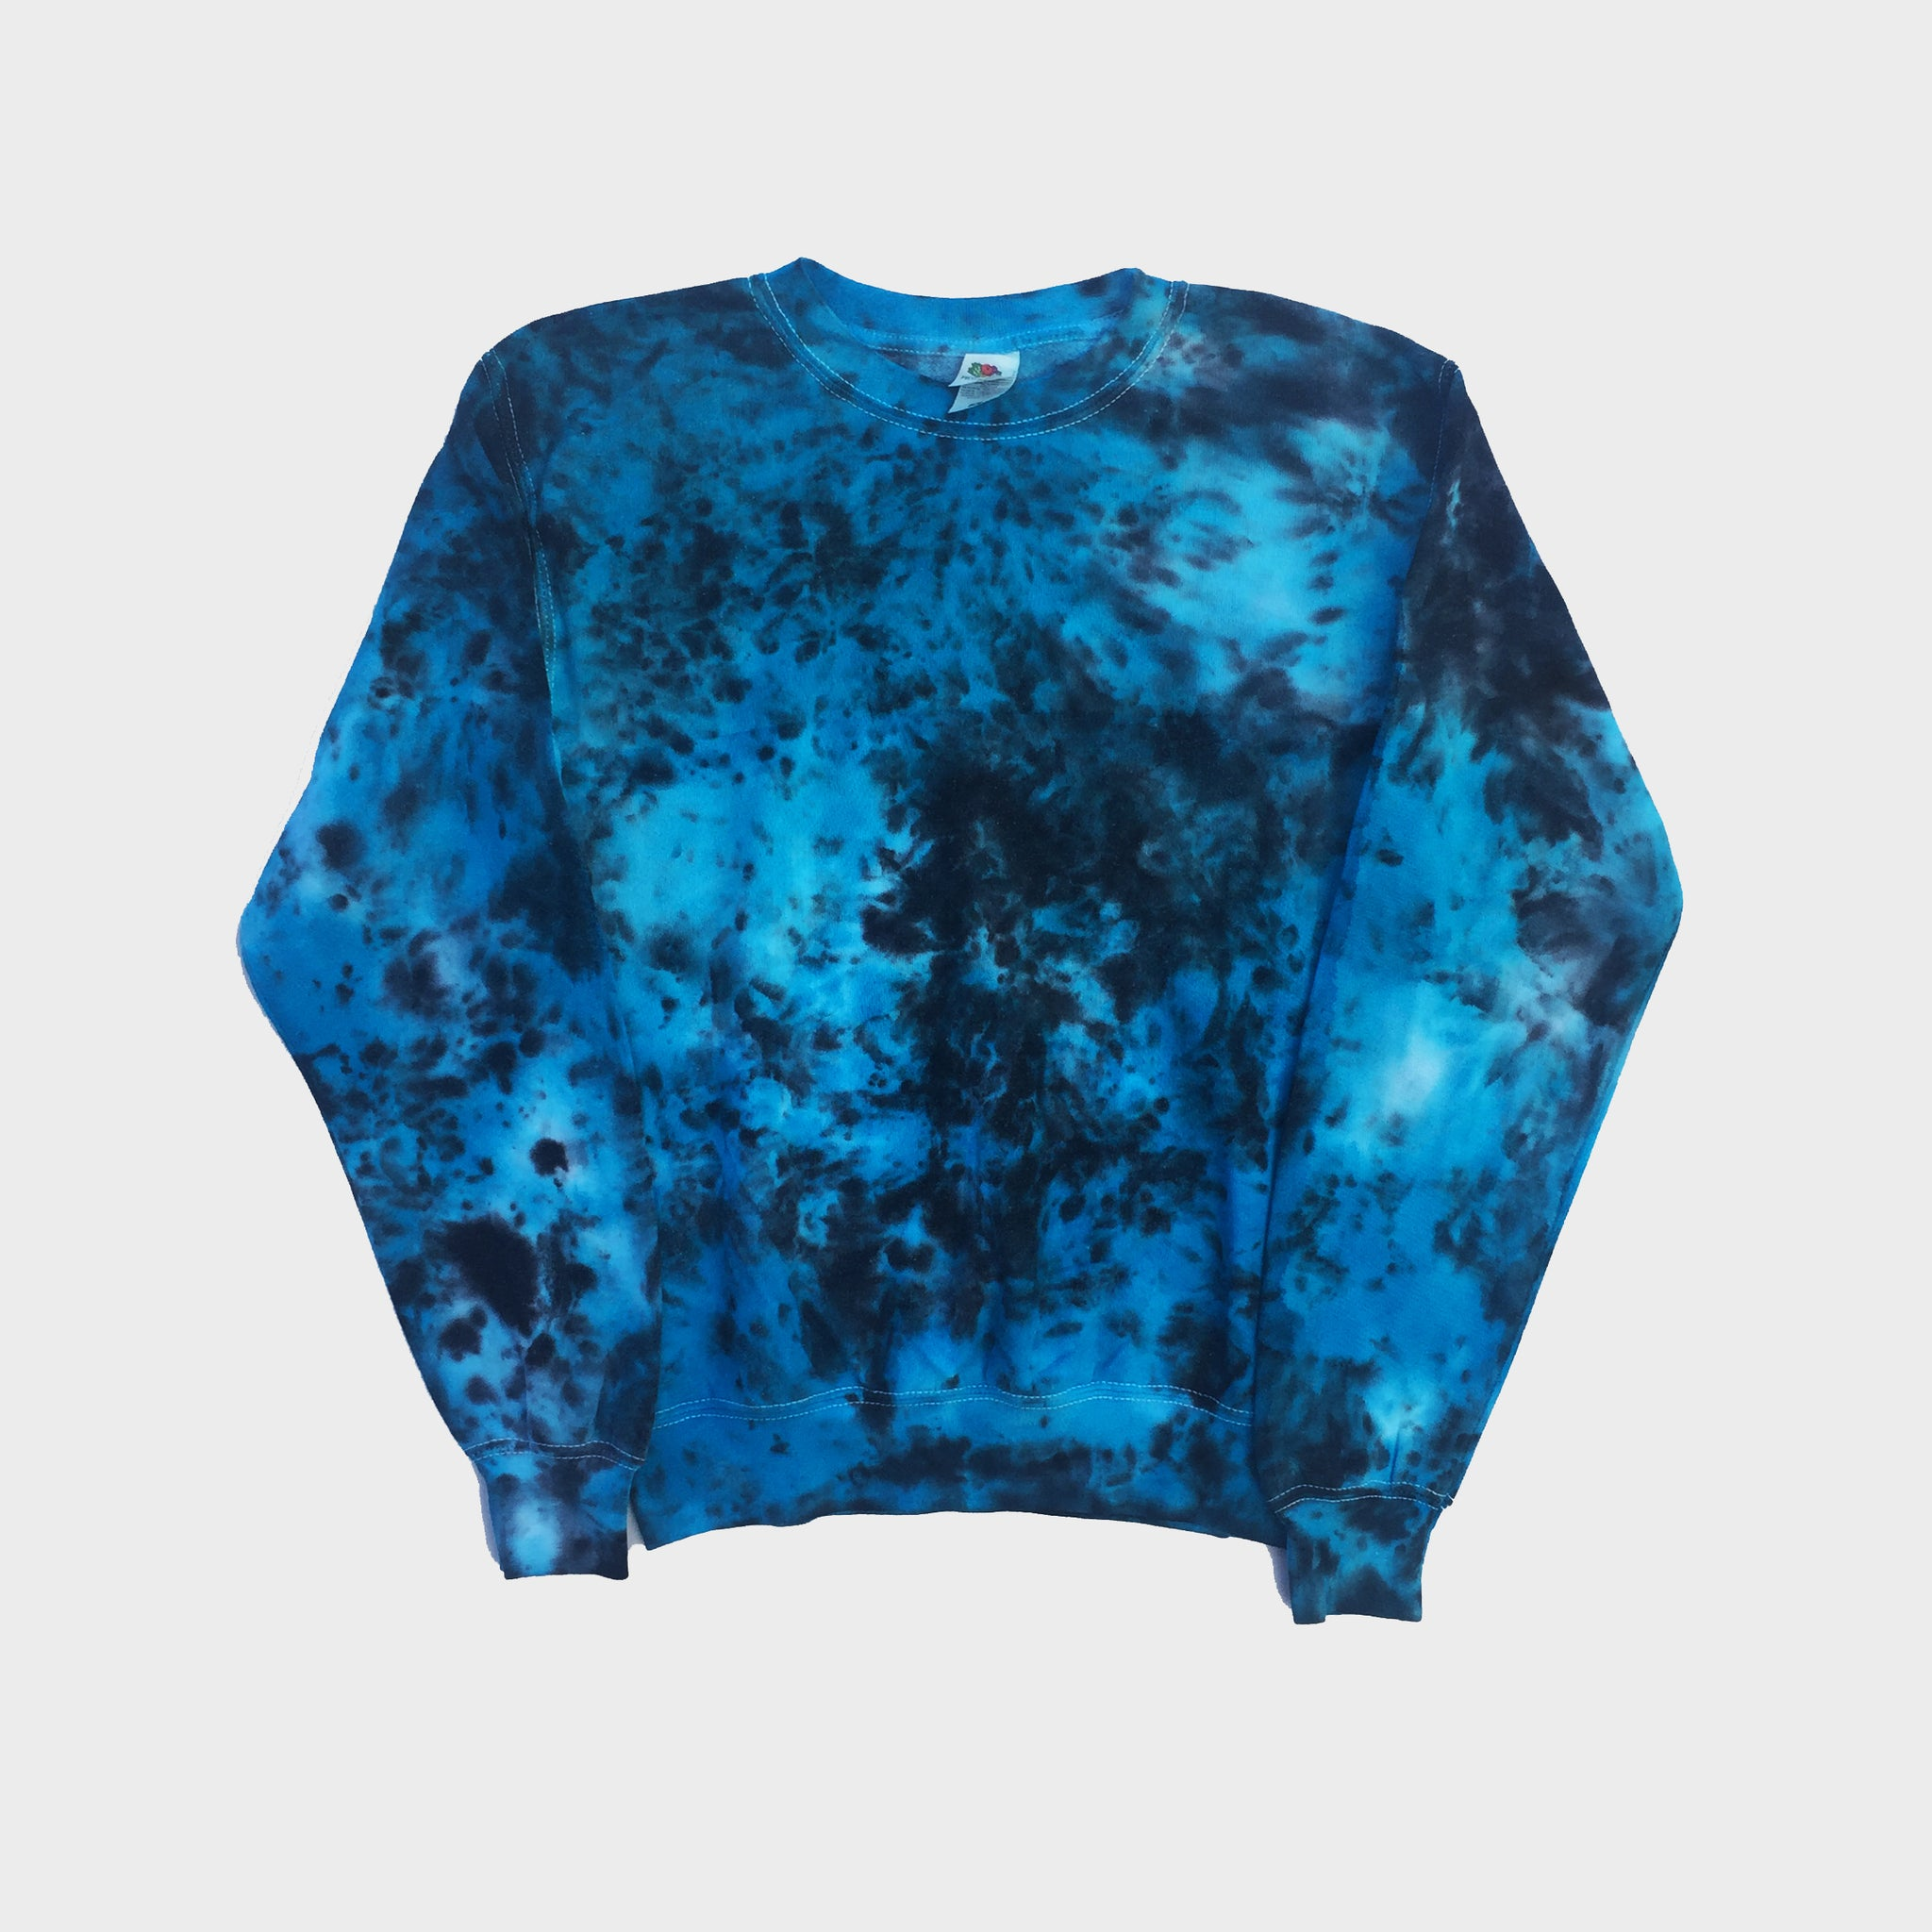 Plain Blue/Black Tie Dye Sweatshirt